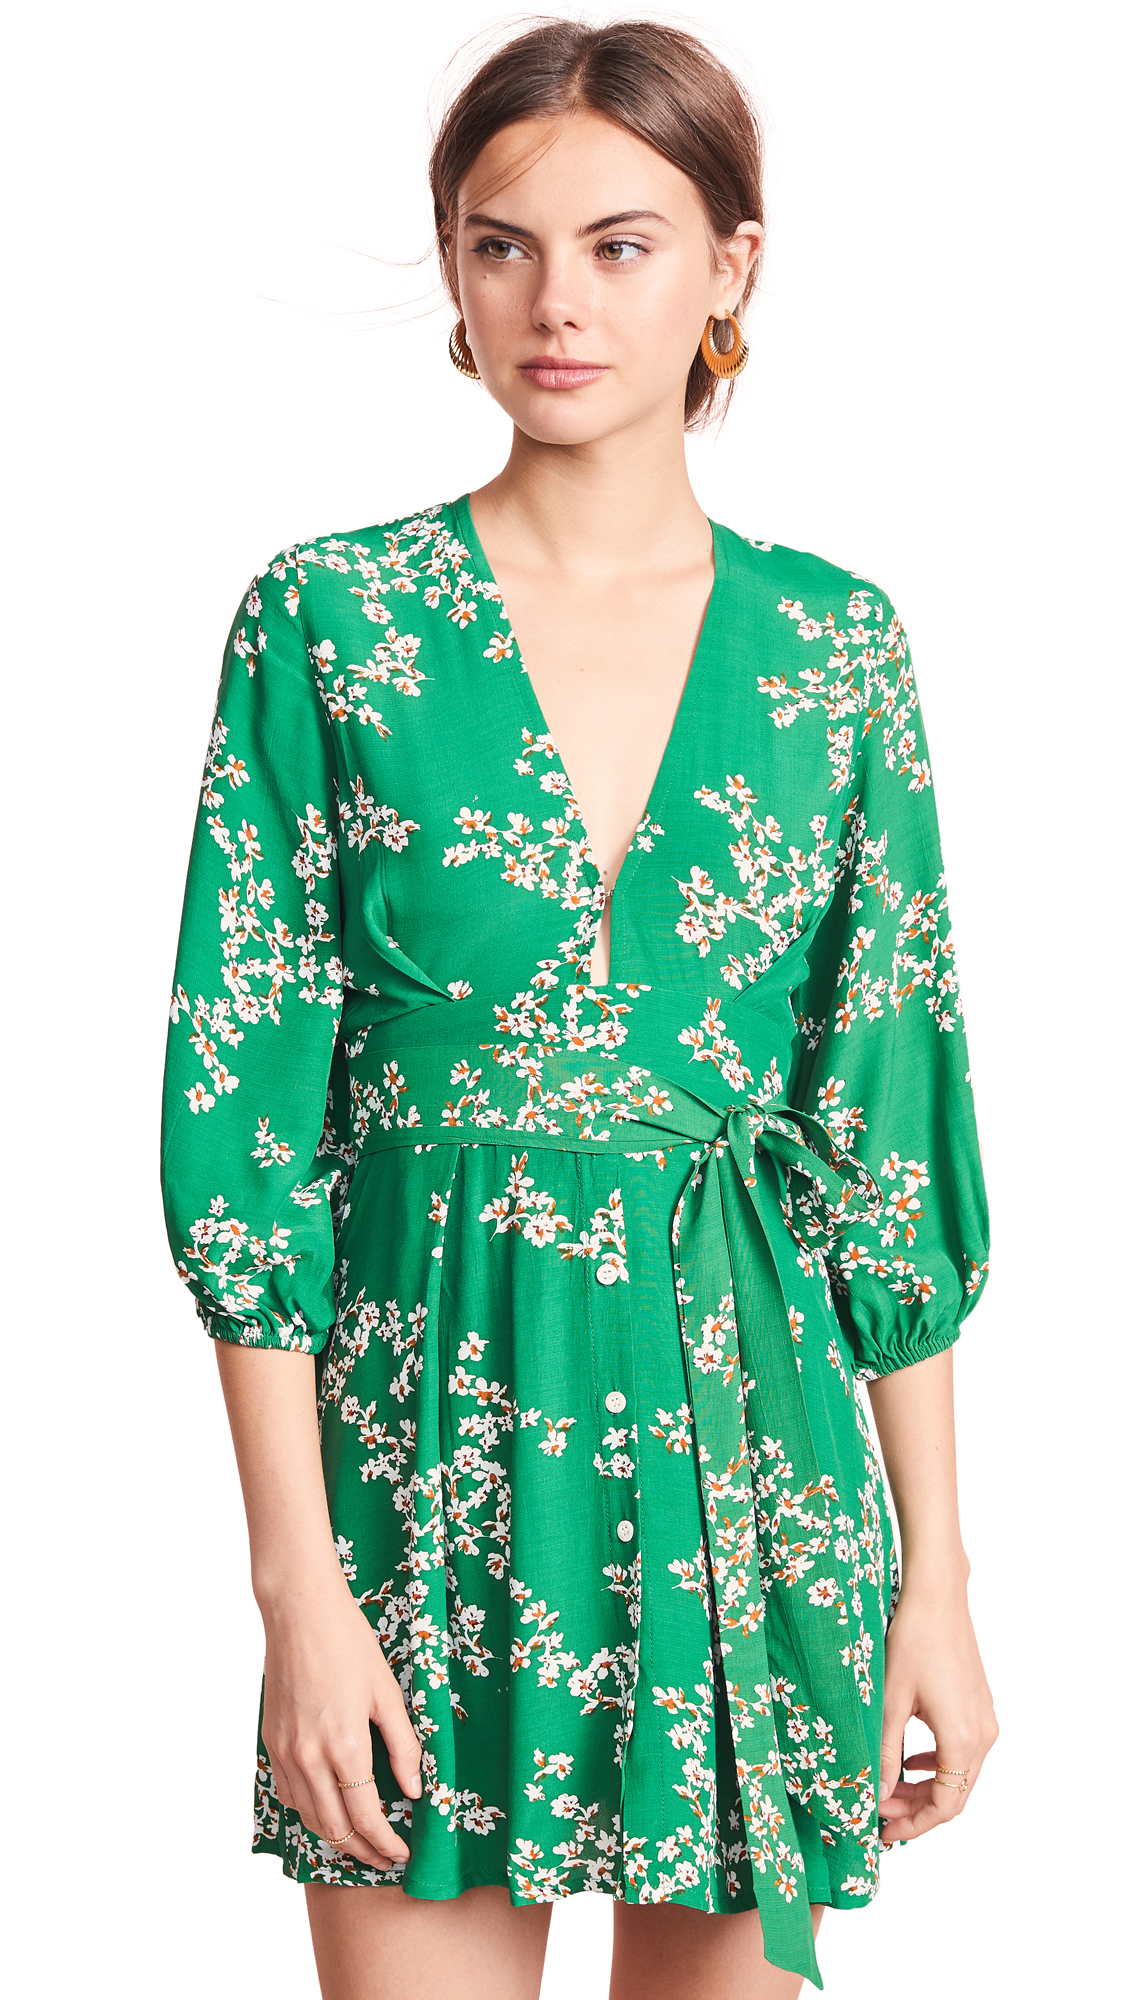 FAITHFULL THE BRAND Margot Floral Print Button Front Dress in Green